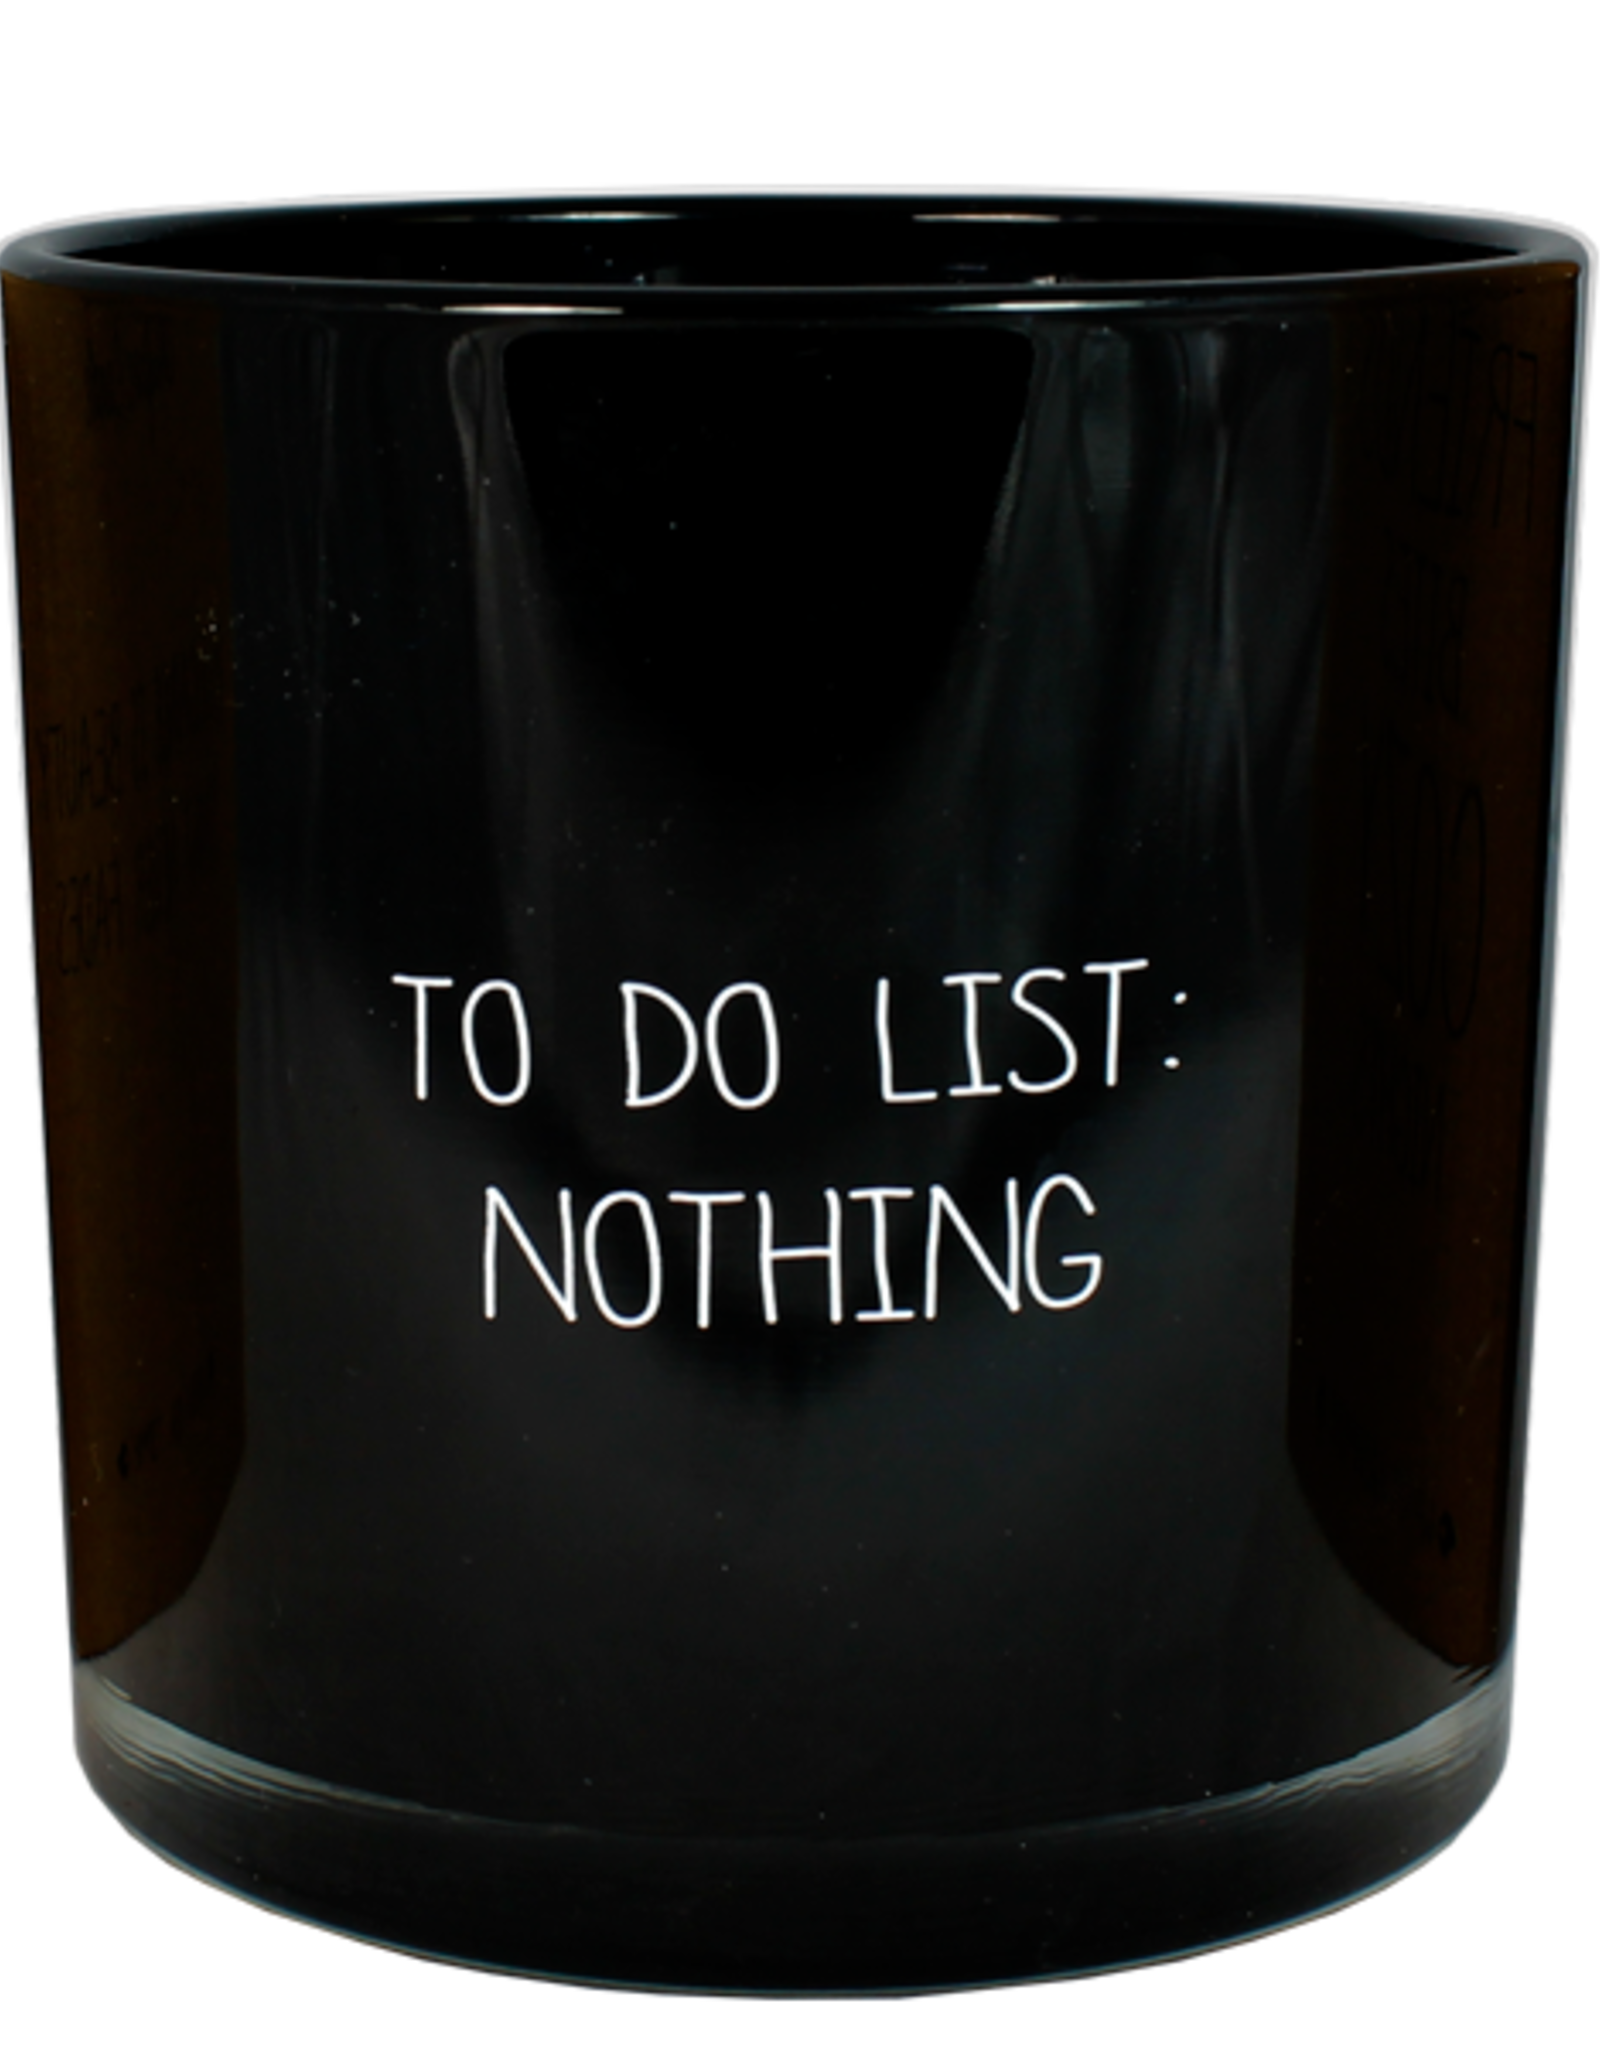 My Flame Sojakaars - To Do List: Nothing